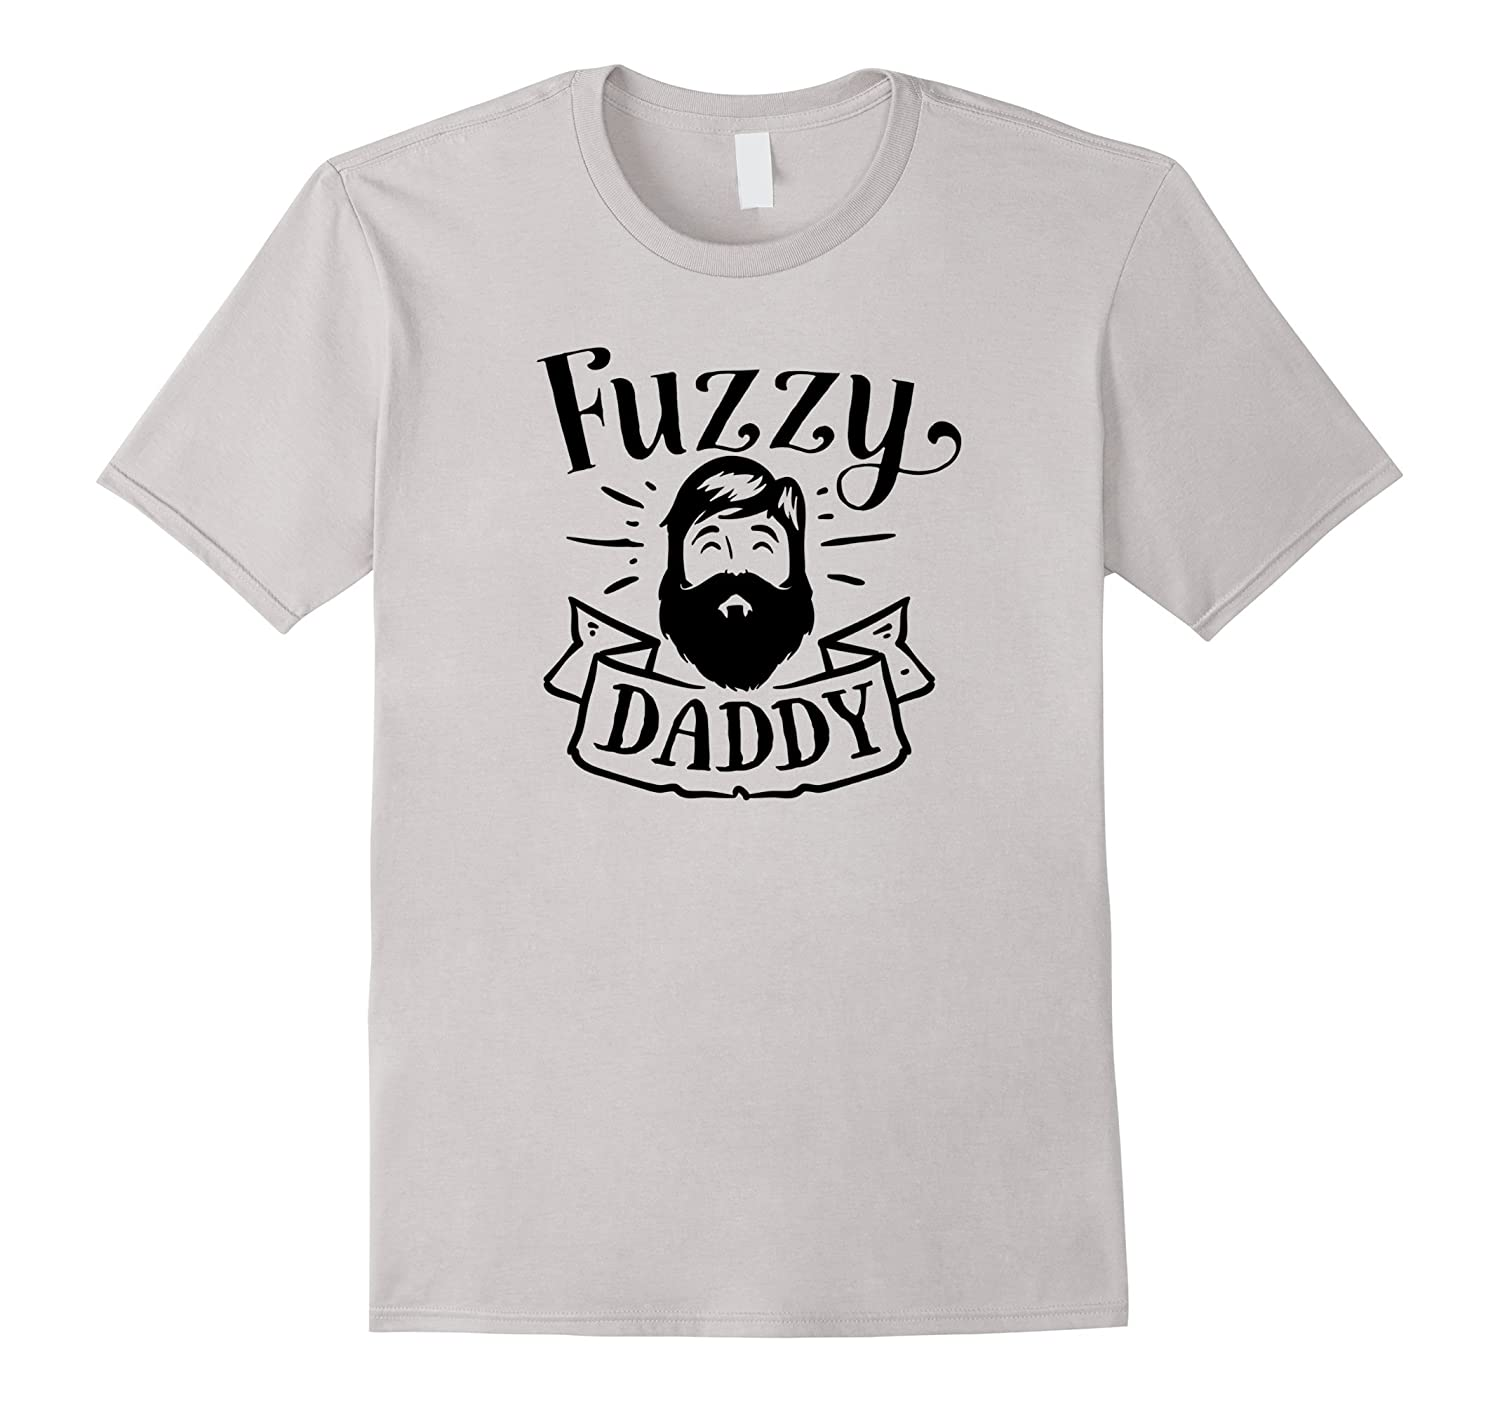 Mens Fuzzy Daddy T-Shirt Funny Shirt for Hipster Beard Father Dad-CD